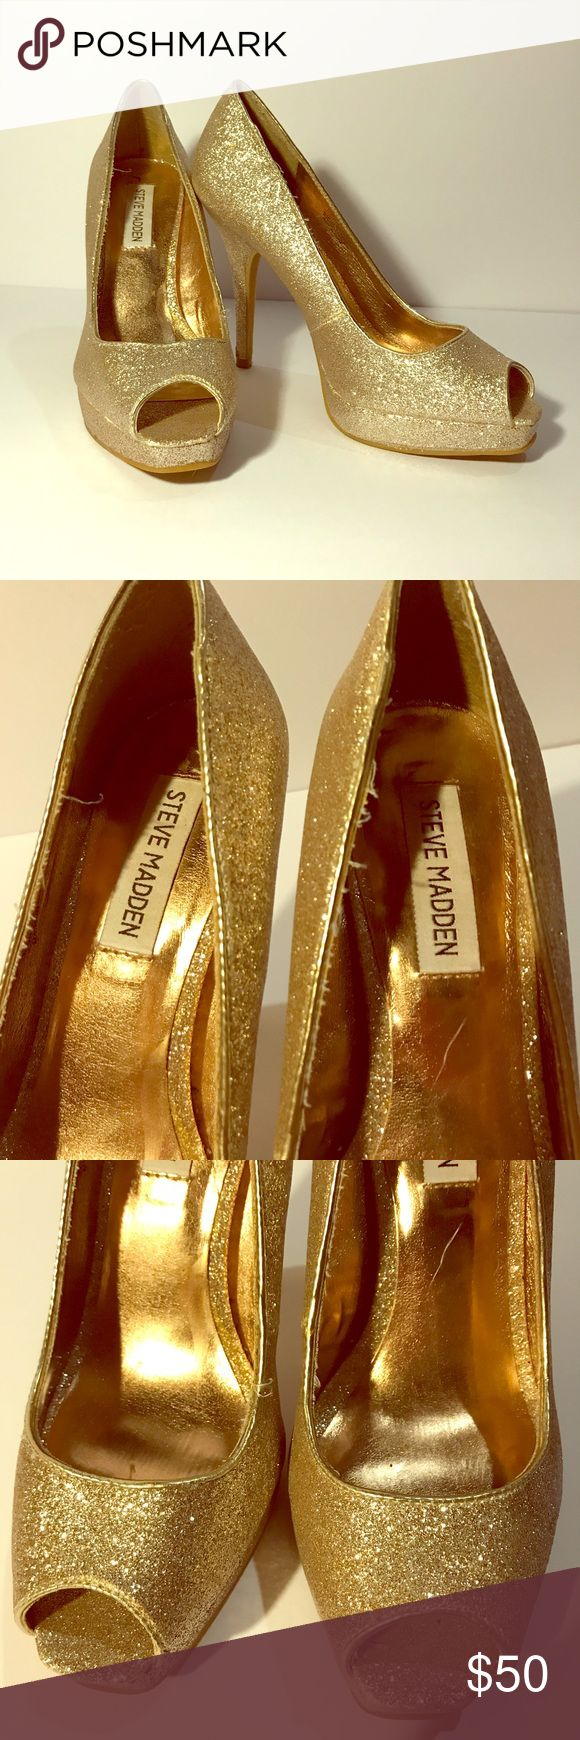 Steve Madden Gold Glitter Sequin High Heel Shoes Steve Madden Golden Stileto Platform High Heel Shoes Size 8. 5 inch heels. Great condition with very little signs of wear. See photos for closeup details. All items come from smoke free and pet free home. Steve Madden Shoes Heels